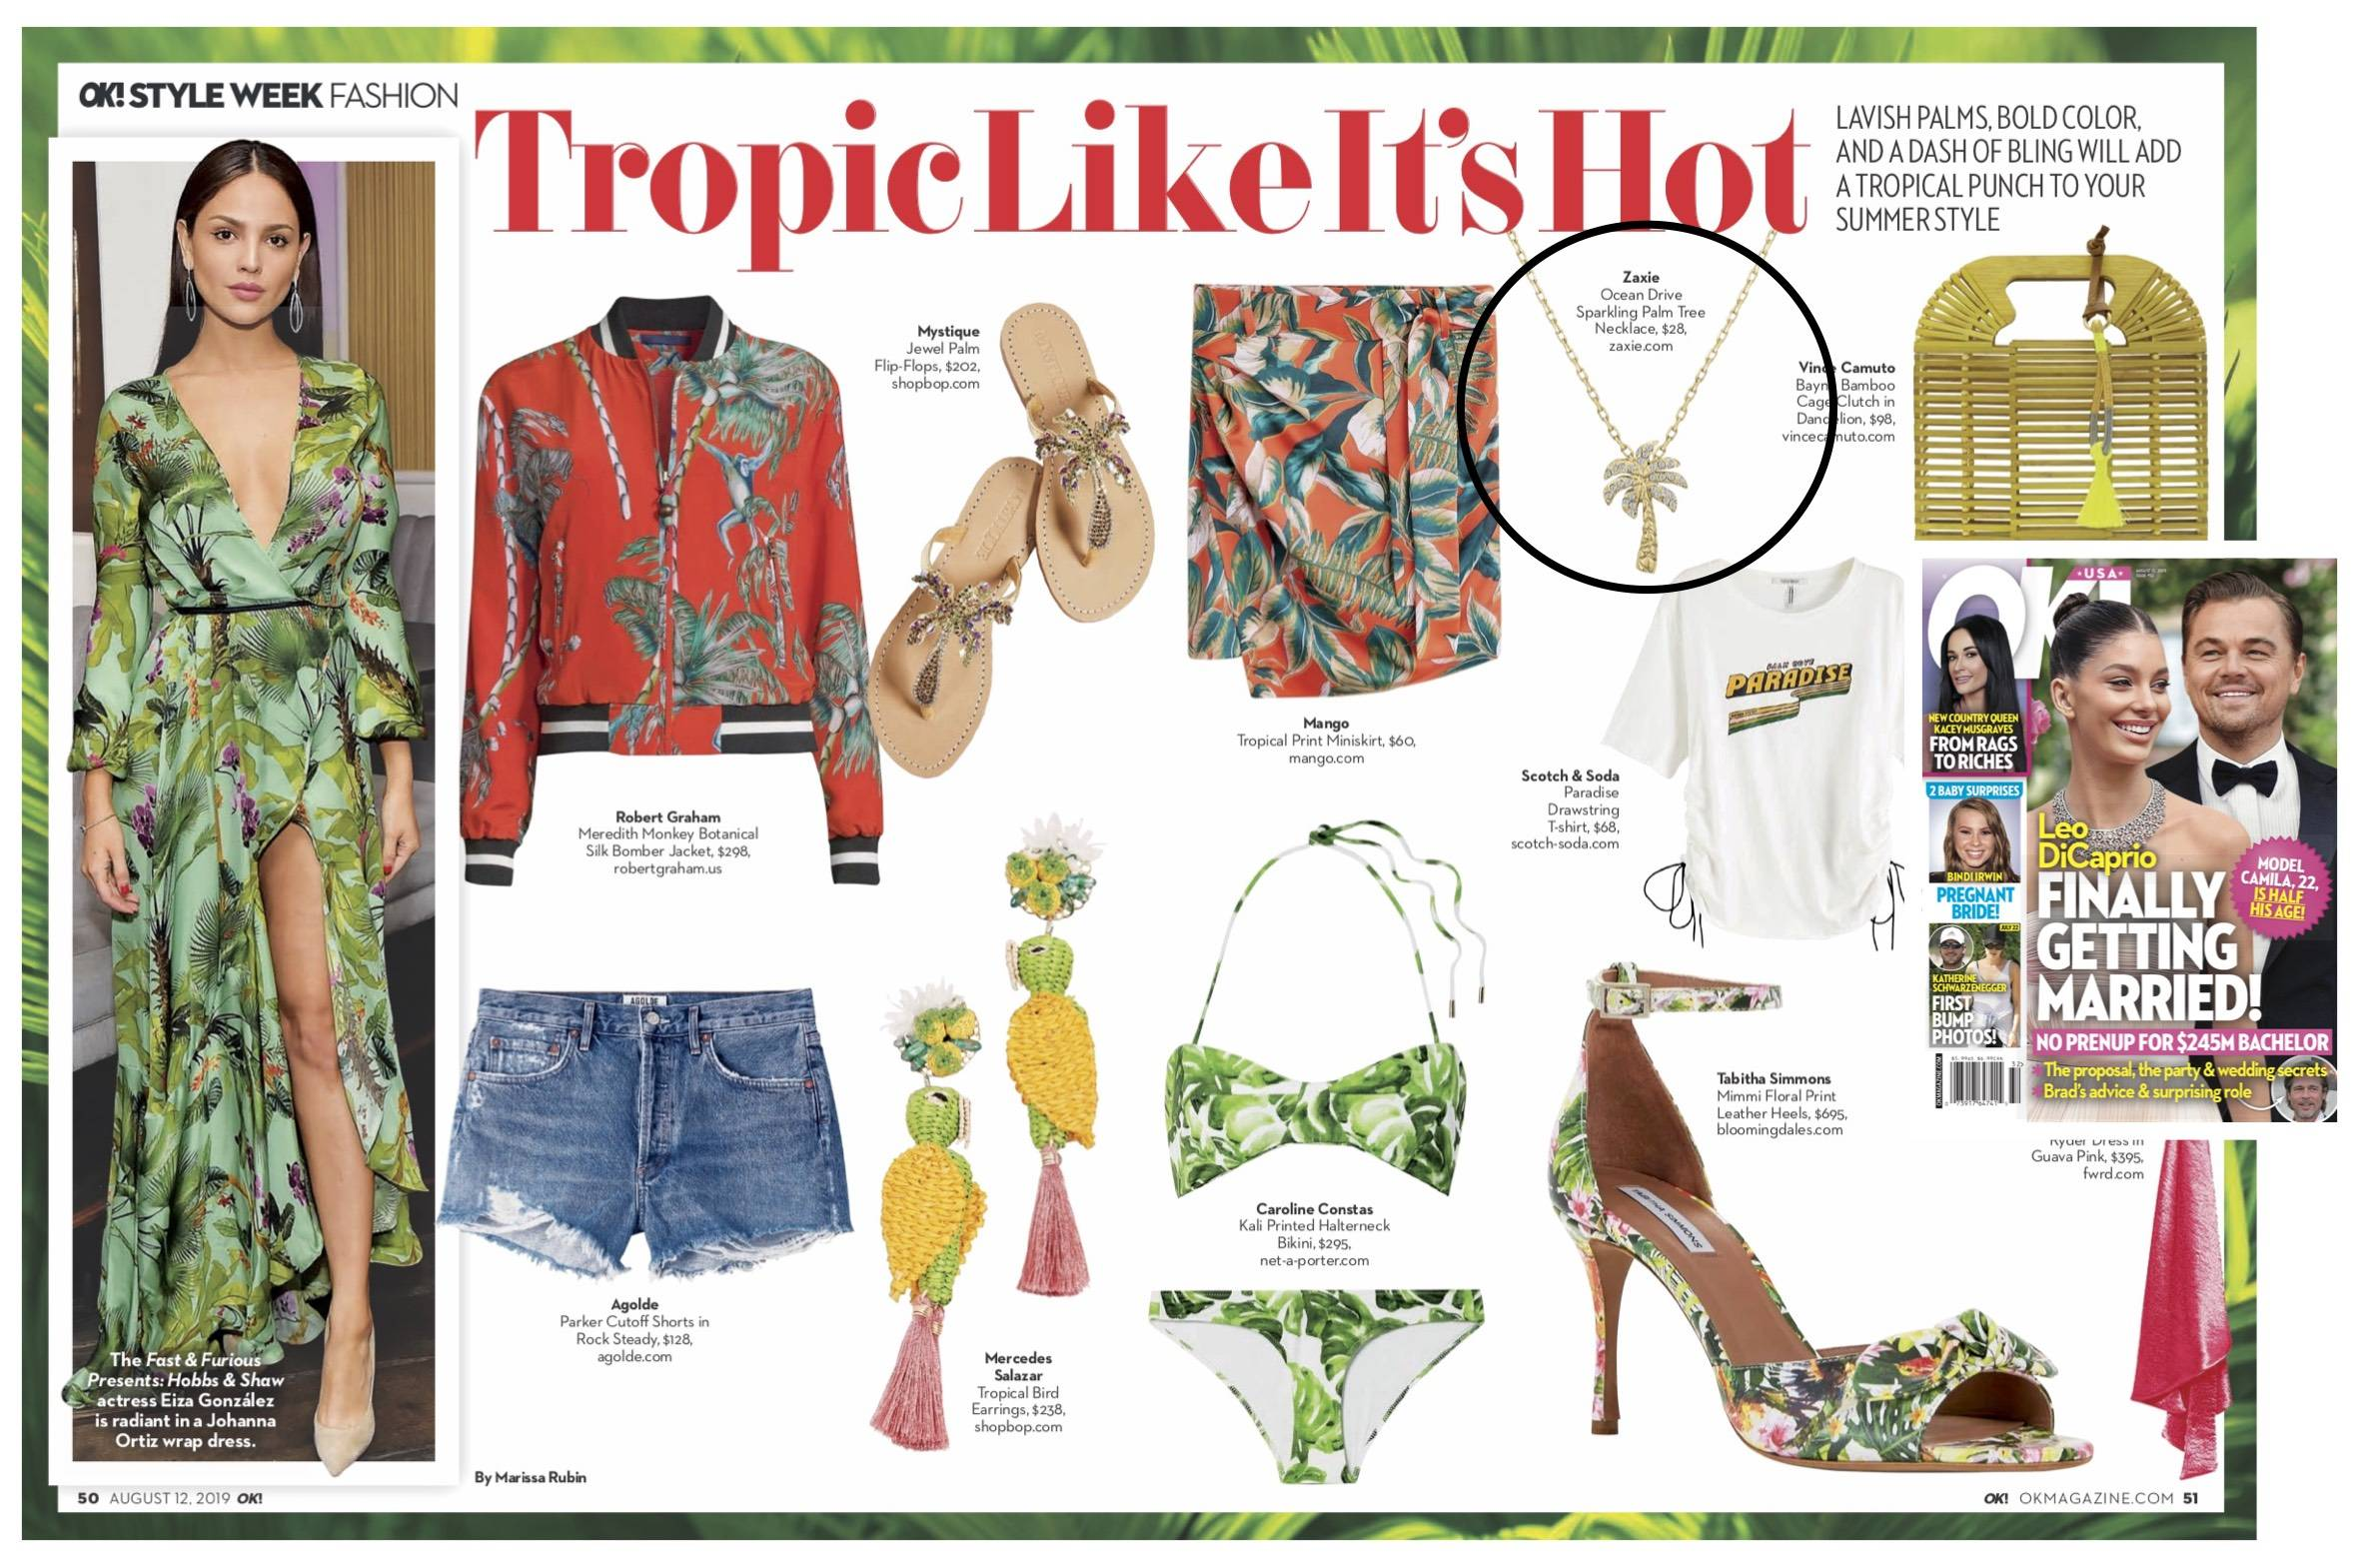 ZAXIE Palm Tree Necklace in US Weekly